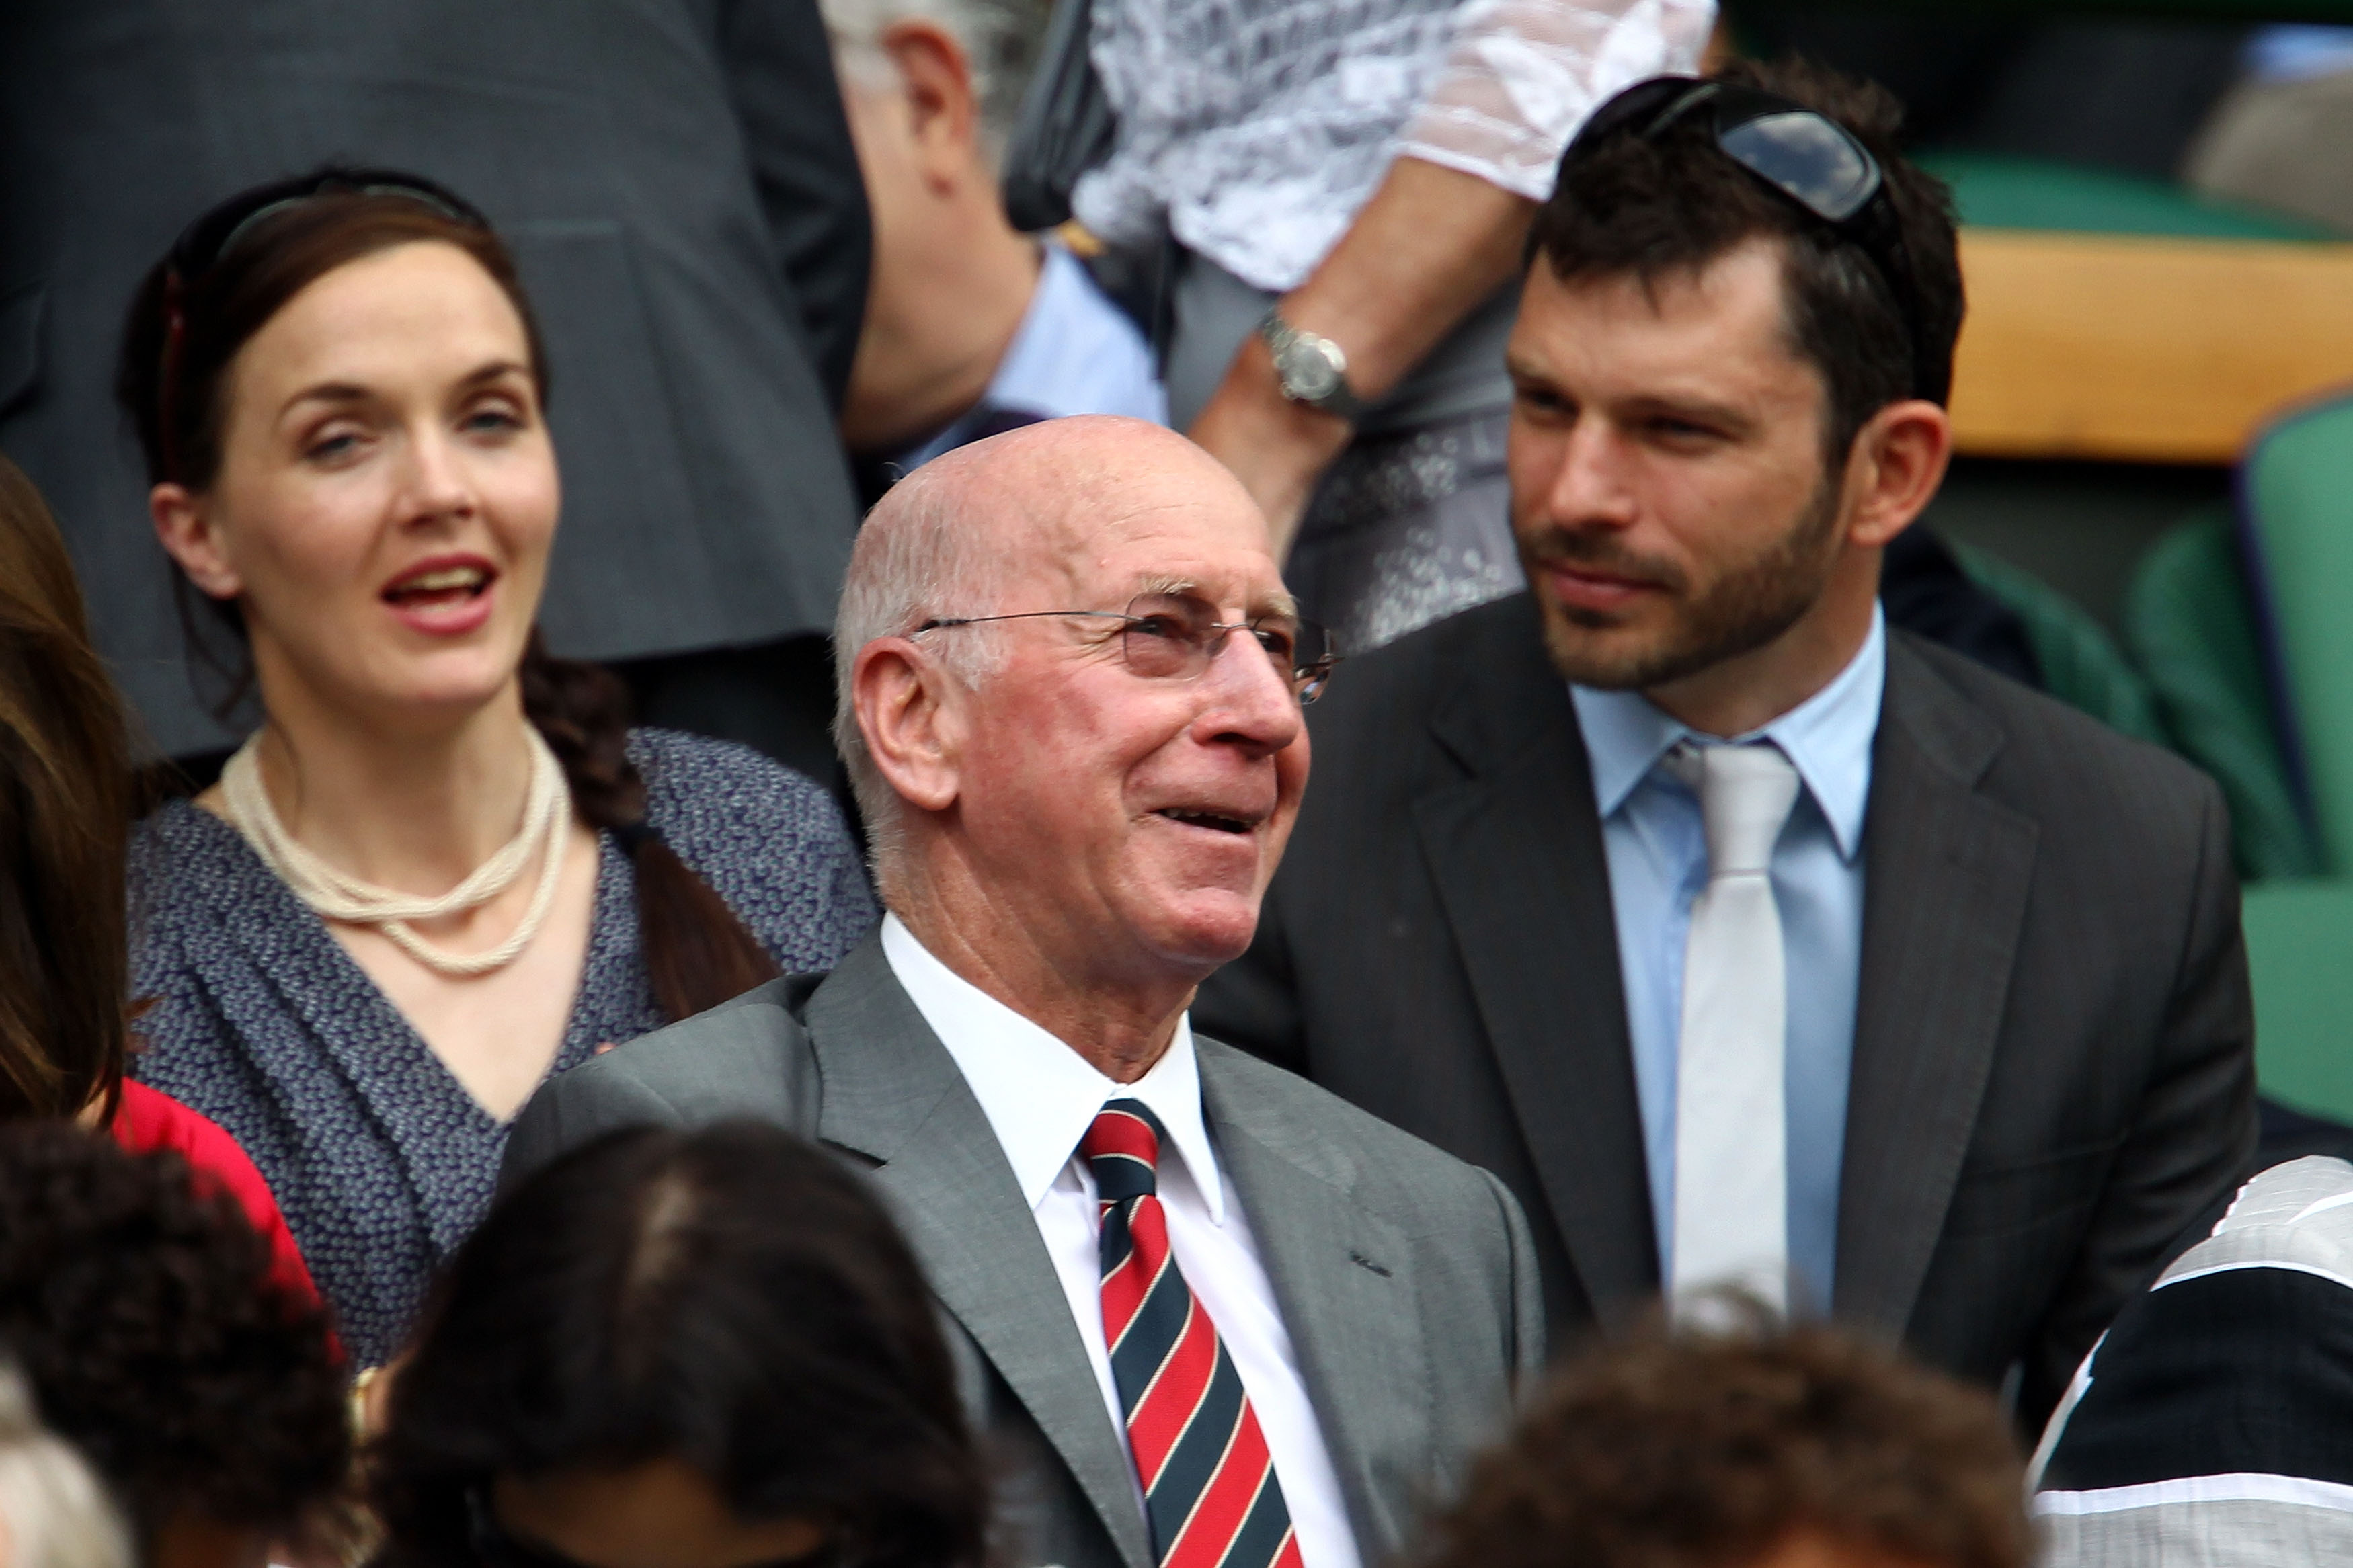 LONDON, ENGLAND - JUNE 26:  Victoria Pendleton (L) and Sir Bobby Charlton (C) watch a match at Centre Court on Day Six of the Wimbledon Lawn Tennis Championships at the All England Lawn Tennis and Croquet Club on June 26, 2010 in London, England.  (Photo